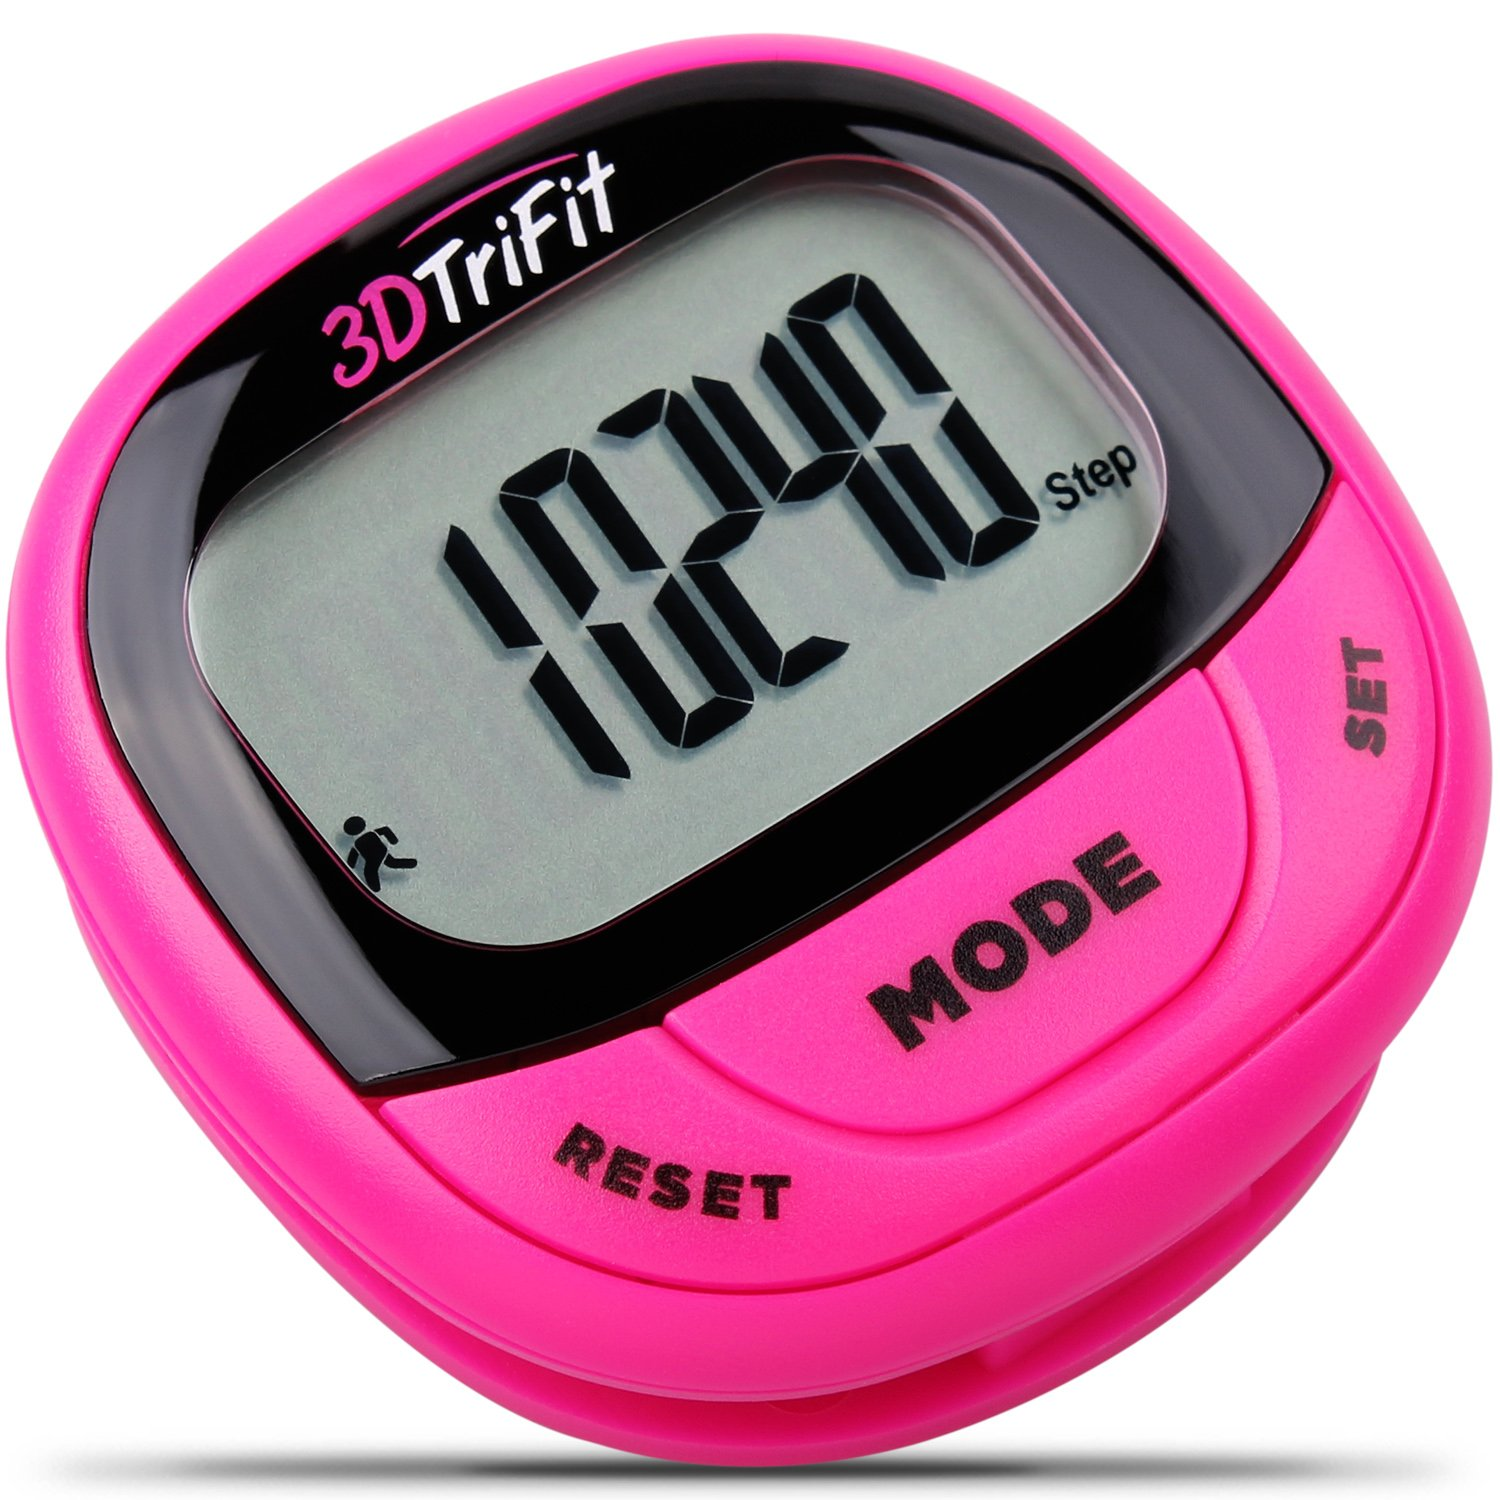 3DTriFit 3D Pedometer Activity Tracker | Best Pedometer for Walking with Pause Function & 7-Day Memory for Men & Women. Fitness Tracker Accurately Monitors Steps, Calories Burned & Distance (Magenta) by Realalt